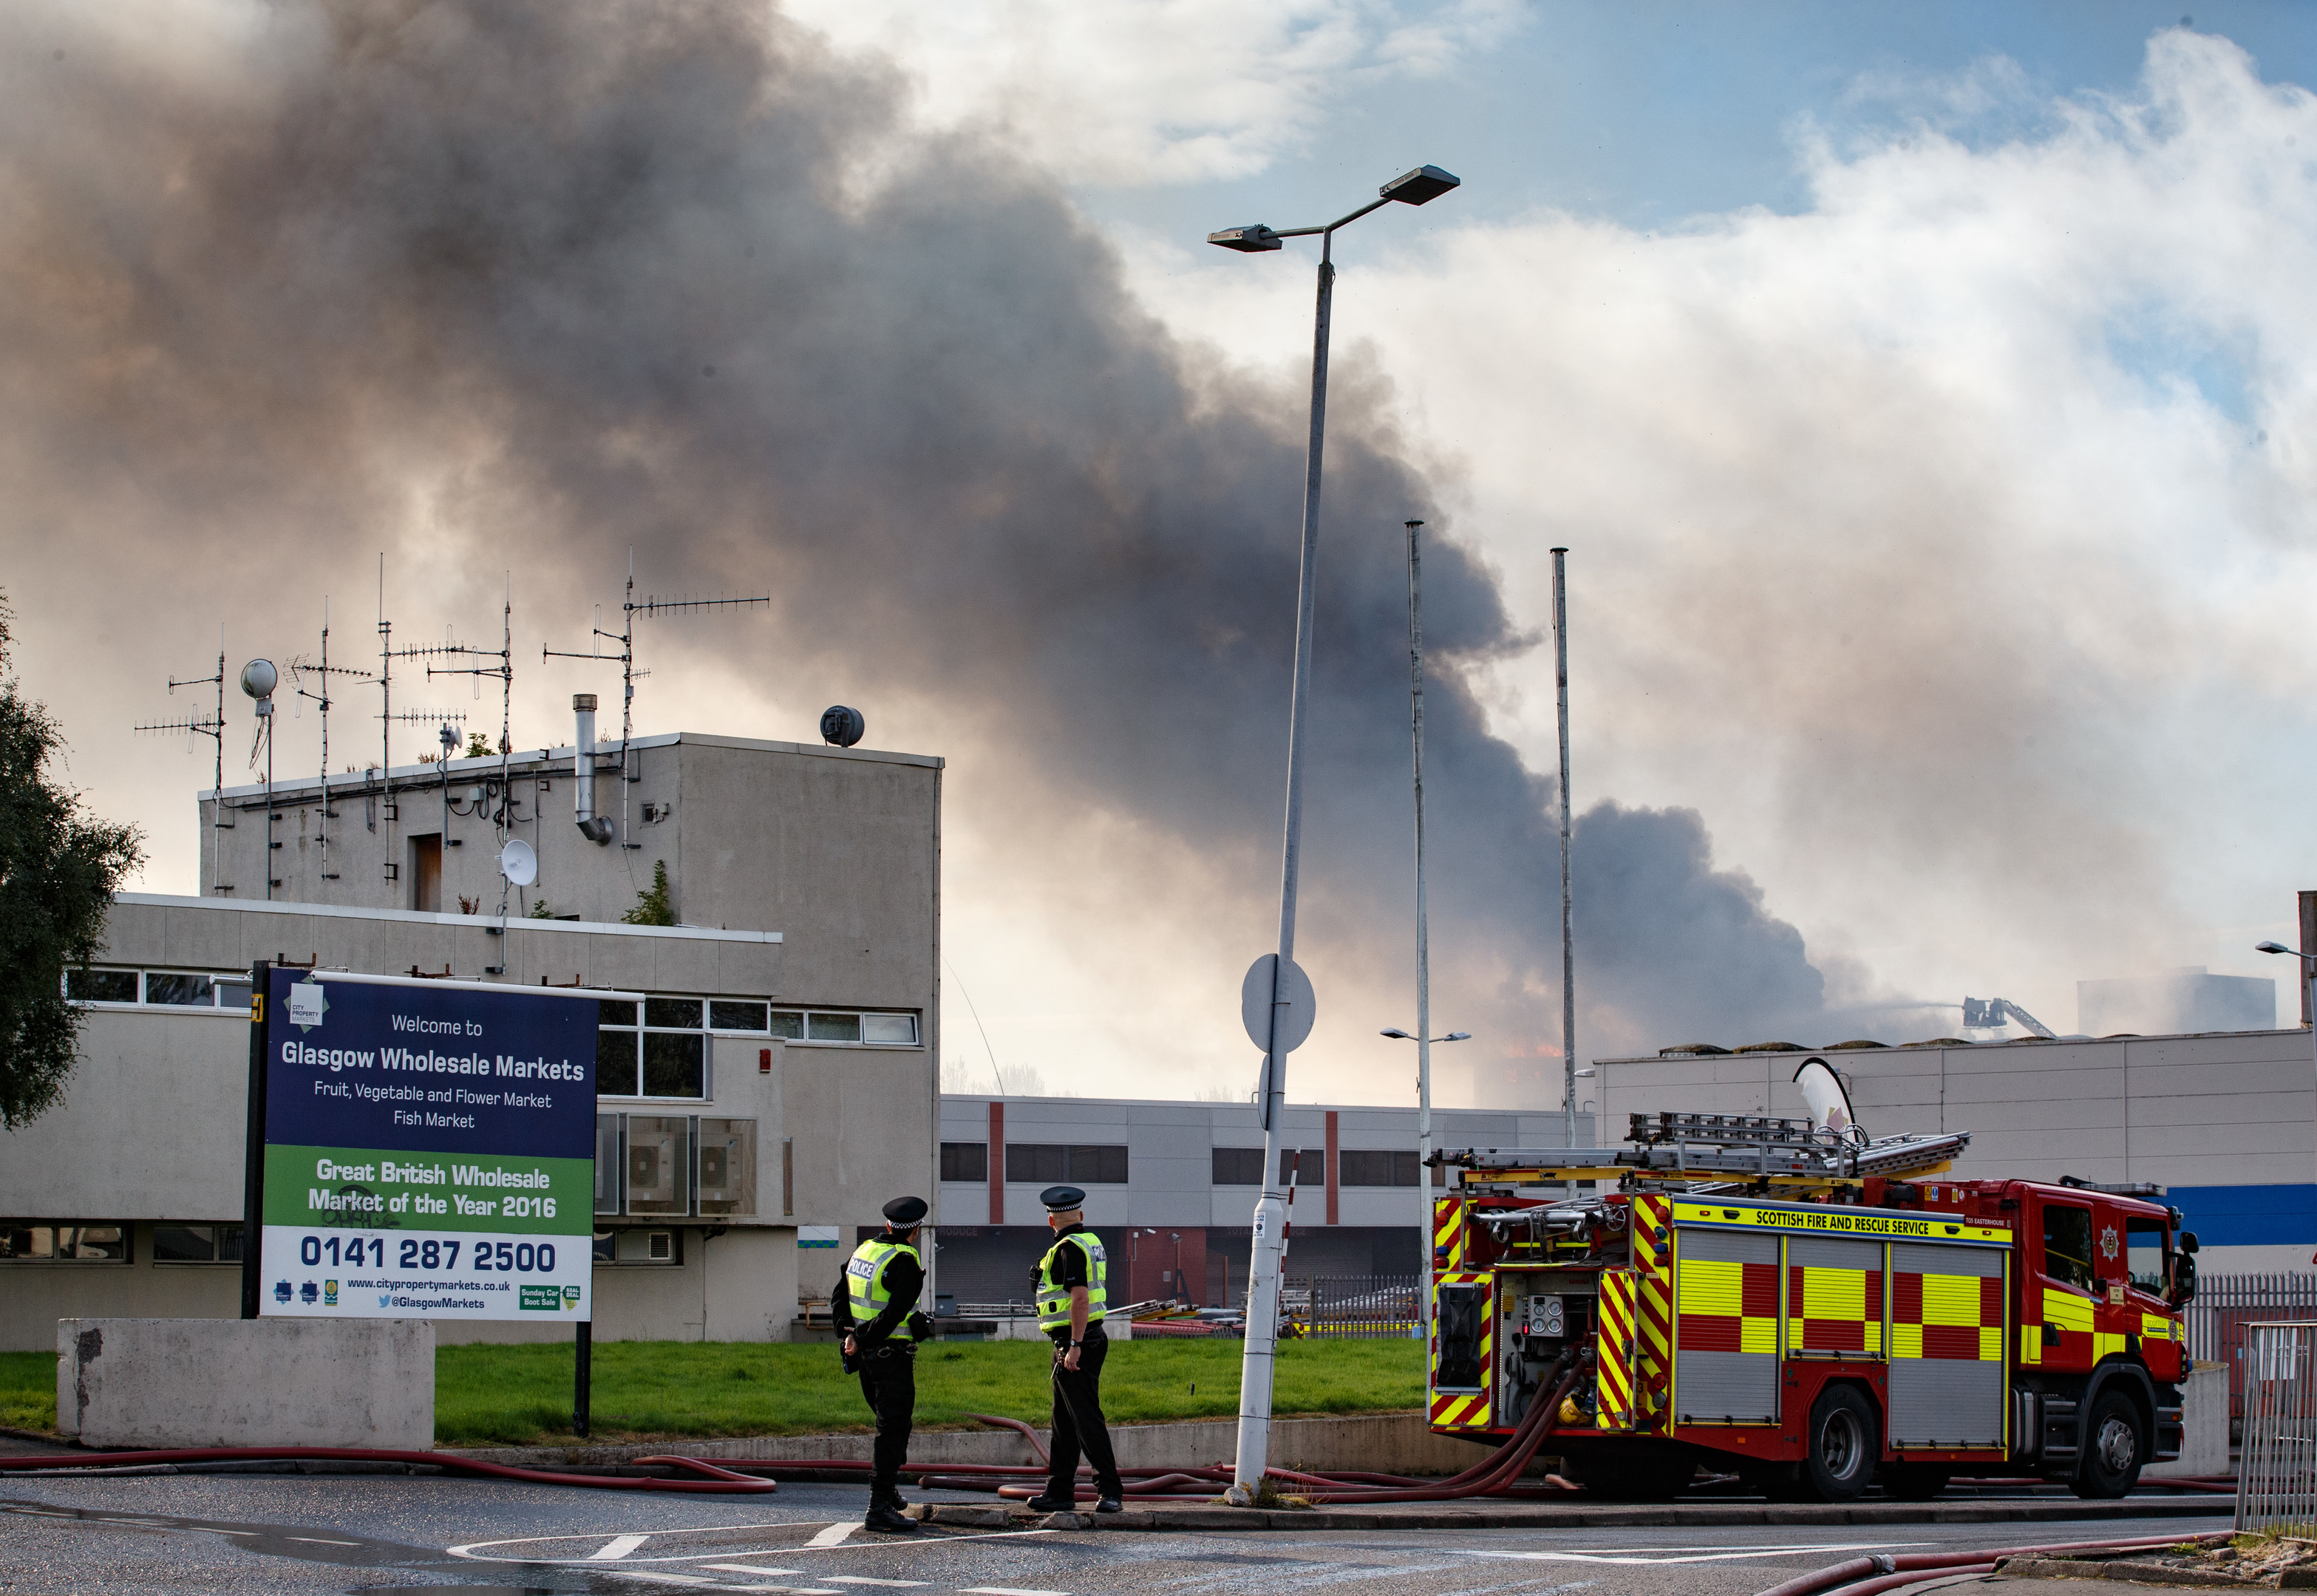 Firefighters attend the scene of a blaze at Blochairn Fruitmarket (Robert Perry/Getty Images)